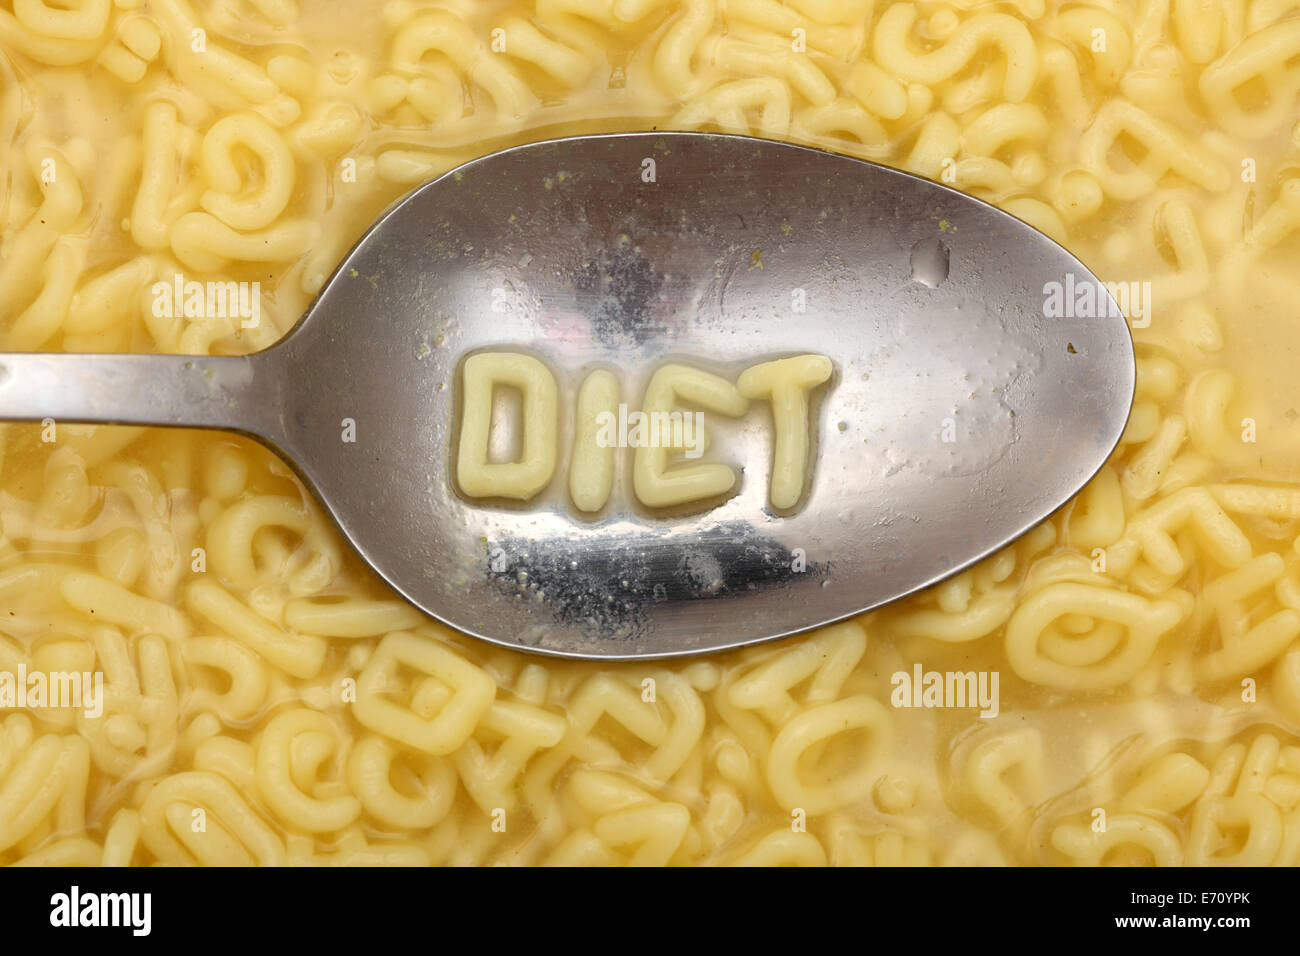 Alphabet letters in spoon spell out 'Diet'. Alphabet Soup Pasta. Closeup. - Stock Image